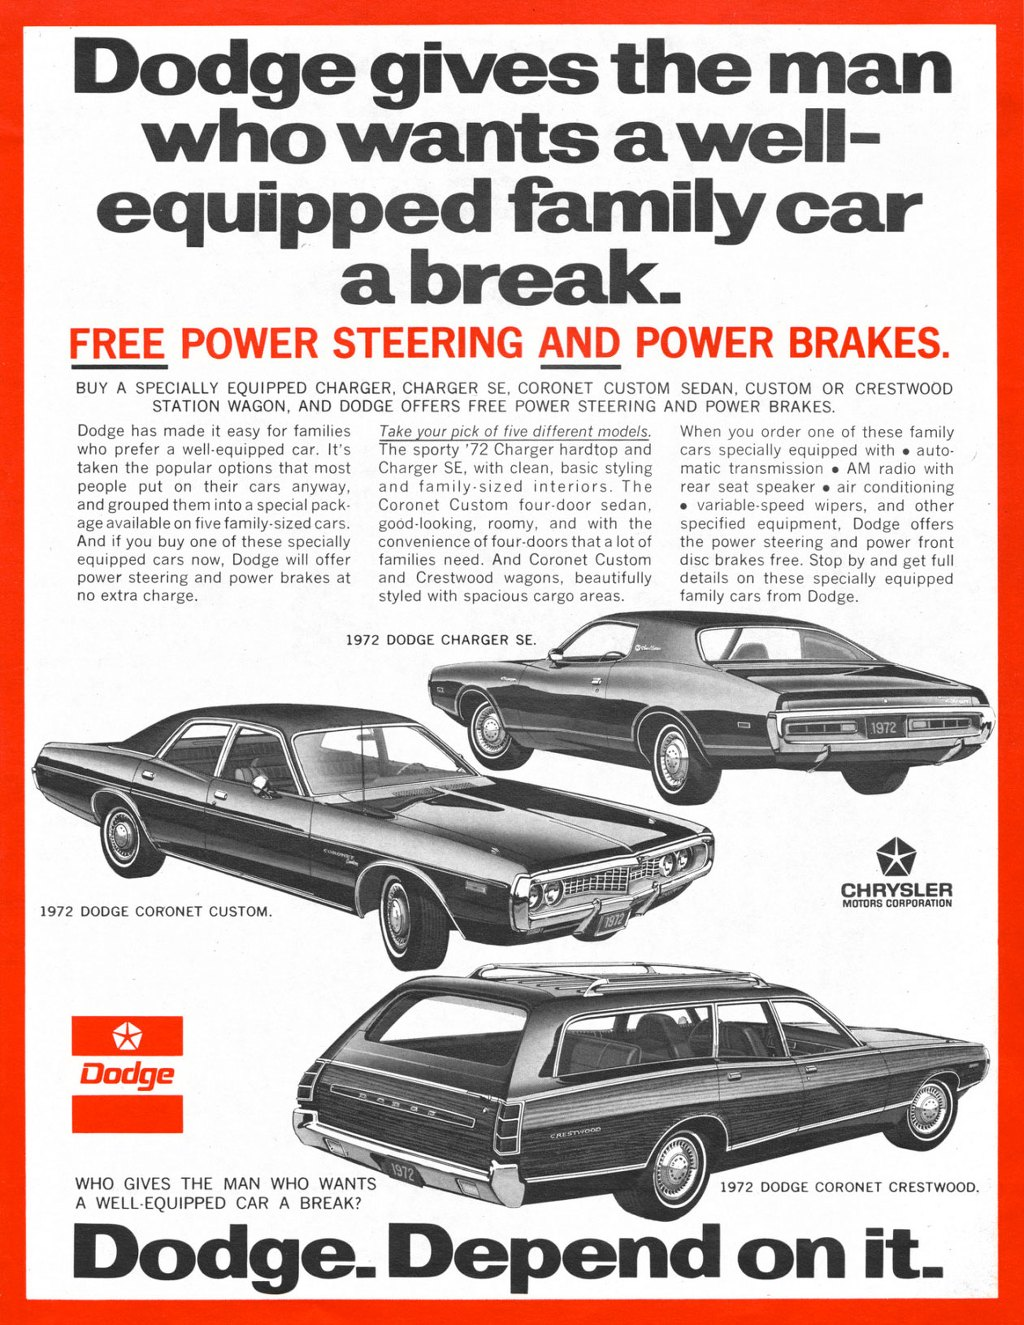 Dodge gives the man who wants a well-equipped family car a break.  FREE POWER STEERING AND POWER BRAKES.  BUY A SPECIALLY EQUIPPED CHARGER, CHARGER SE, CORONET CUSTOM SEDAN, CUSTOM OR CRESTWOOD STATION WAGON, AND DODGE OFFERS FREE POWER STEERING AND POWER BRAKES.  Dodge has made it easy for families who prefer a well-equipped car. It's taken the popular options that most people put on their cars anyway, and grouped them into a special pack-age available on five family-sized cars. And if you buy one of these specially equipped cars now, Dodge will offer power steering and power brakes at no extra charge.   Take your pick of five different models. The sporty '72 Charger hardtop and Charger SE, with clean, basic styling and family-sized interiors. The Coronet Custom four-door sedan, good-looking, roomy, and with the convenience of four-doors that a lot of families need. And Coronet Custom and Crestwood wagons, beautifully styled with spacious cargo areas.  When you order one of these family cars specially equipped with • auto-matic transmission • AM radio with rear seat speaker • air conditioning • variable-speed wipers, and other specified equipment, Dodge offers the power steering and power front disc brakes free. Stop by and get full details on these specially equipped family cars from Dodge.  % 1111111 1972 DODGE CHARGER SE. 11.1 0 -    1972 DODGE CORONET CUSTOM.  Dodge  .1■ CHRYSLER MOTORS CORPORATION  WHO GIVES THE MAN WHO WANTS A WELL-EQUIPPED CAR A BREAK?  1972 DODGE CORONET CRESTWOOD.  Dodge_ Depend on it_